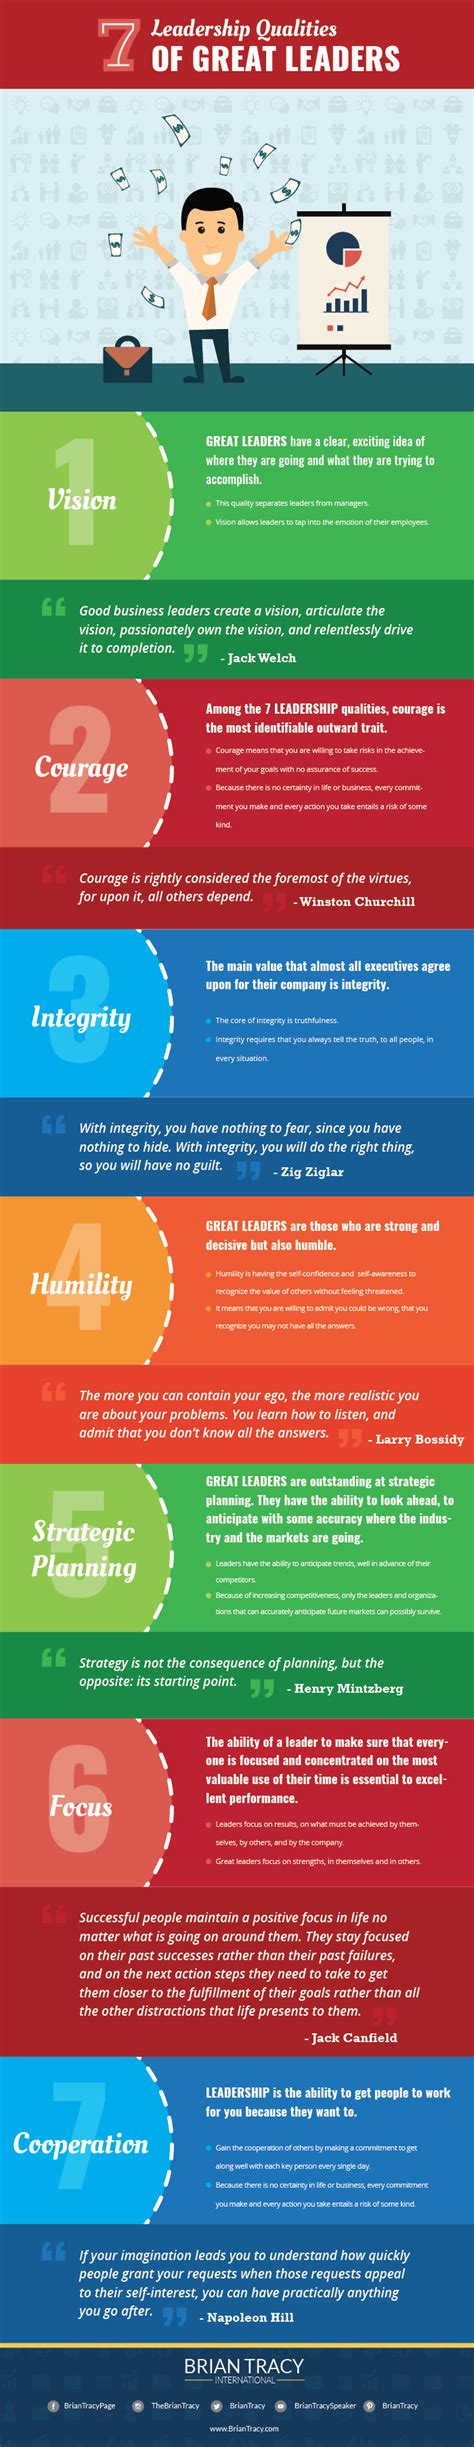 The 7 Best Leadership Qualities (infographic)  Brian Tracy